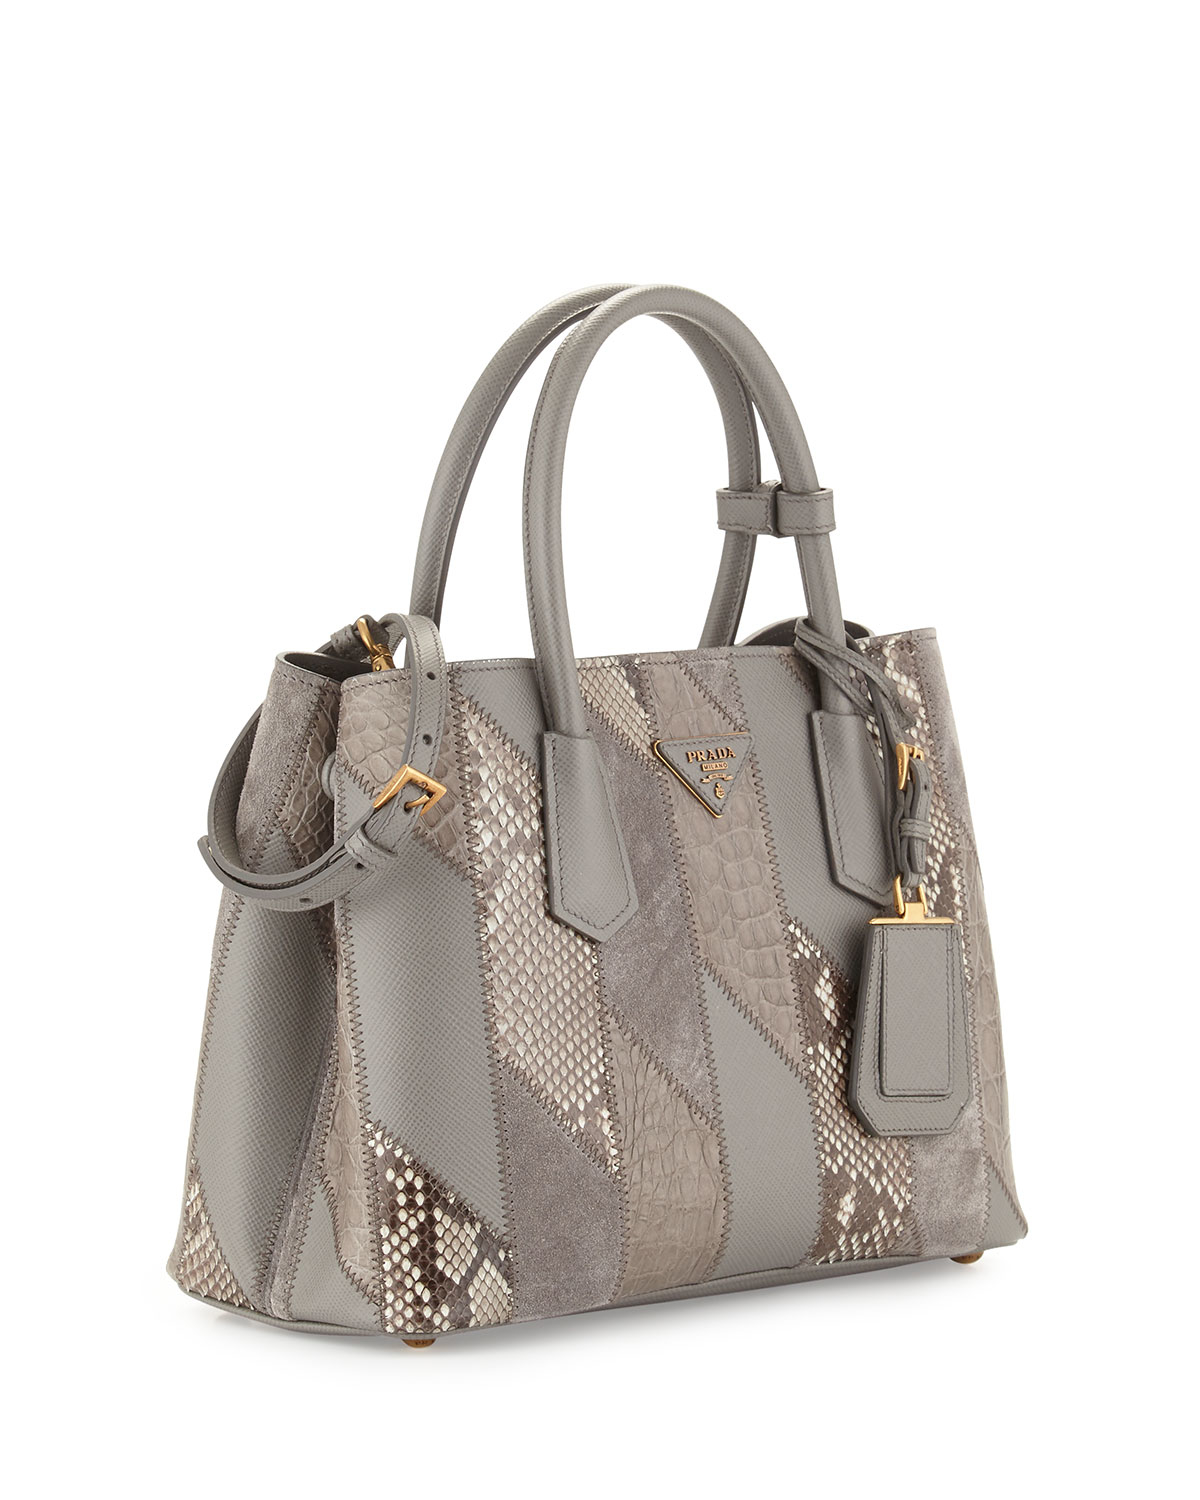 Prada Python \u0026amp; Crocodile Patchwork Small Tote Bag in Brown (LIGHT ...